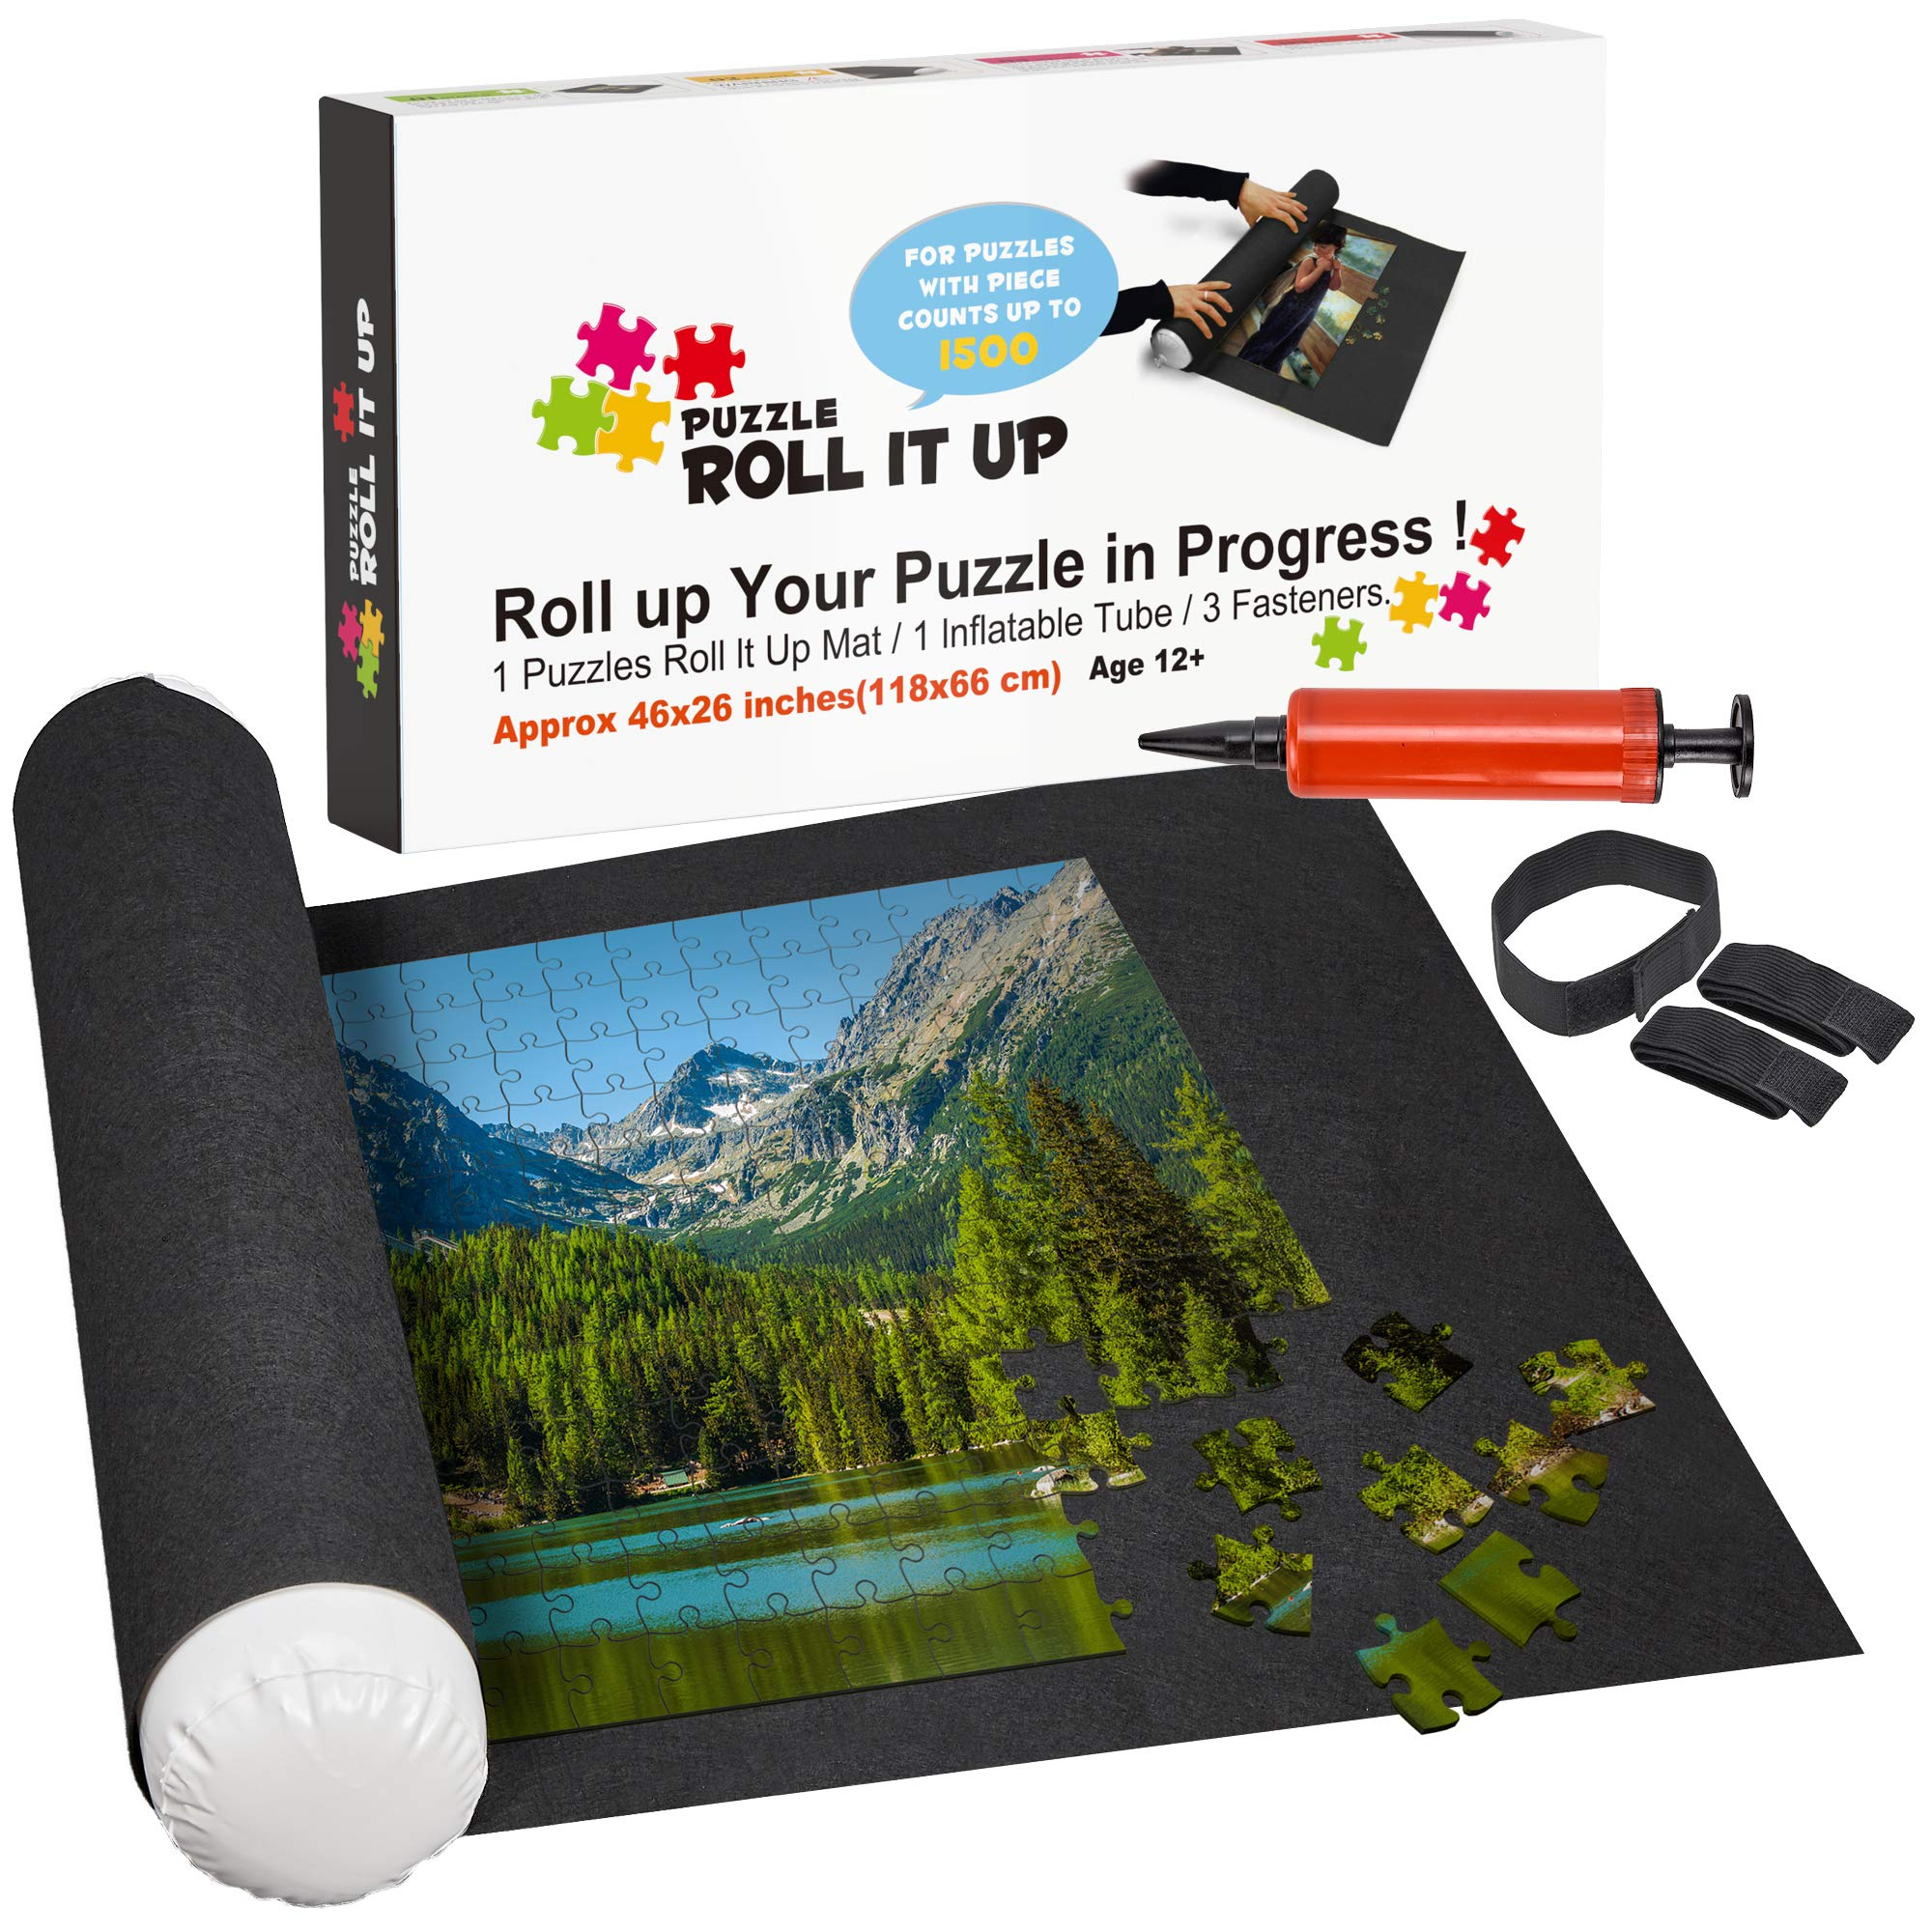 Puzzle Roll Up Mat Premium Pump - Store and Transport Jigsaw Puzzles Up to 1500 Pieces - 46'' x 26'' Felt Mat, Inflatable Tube, and 3 Elastic Fasteners - Plus Bonus New Improved Pump